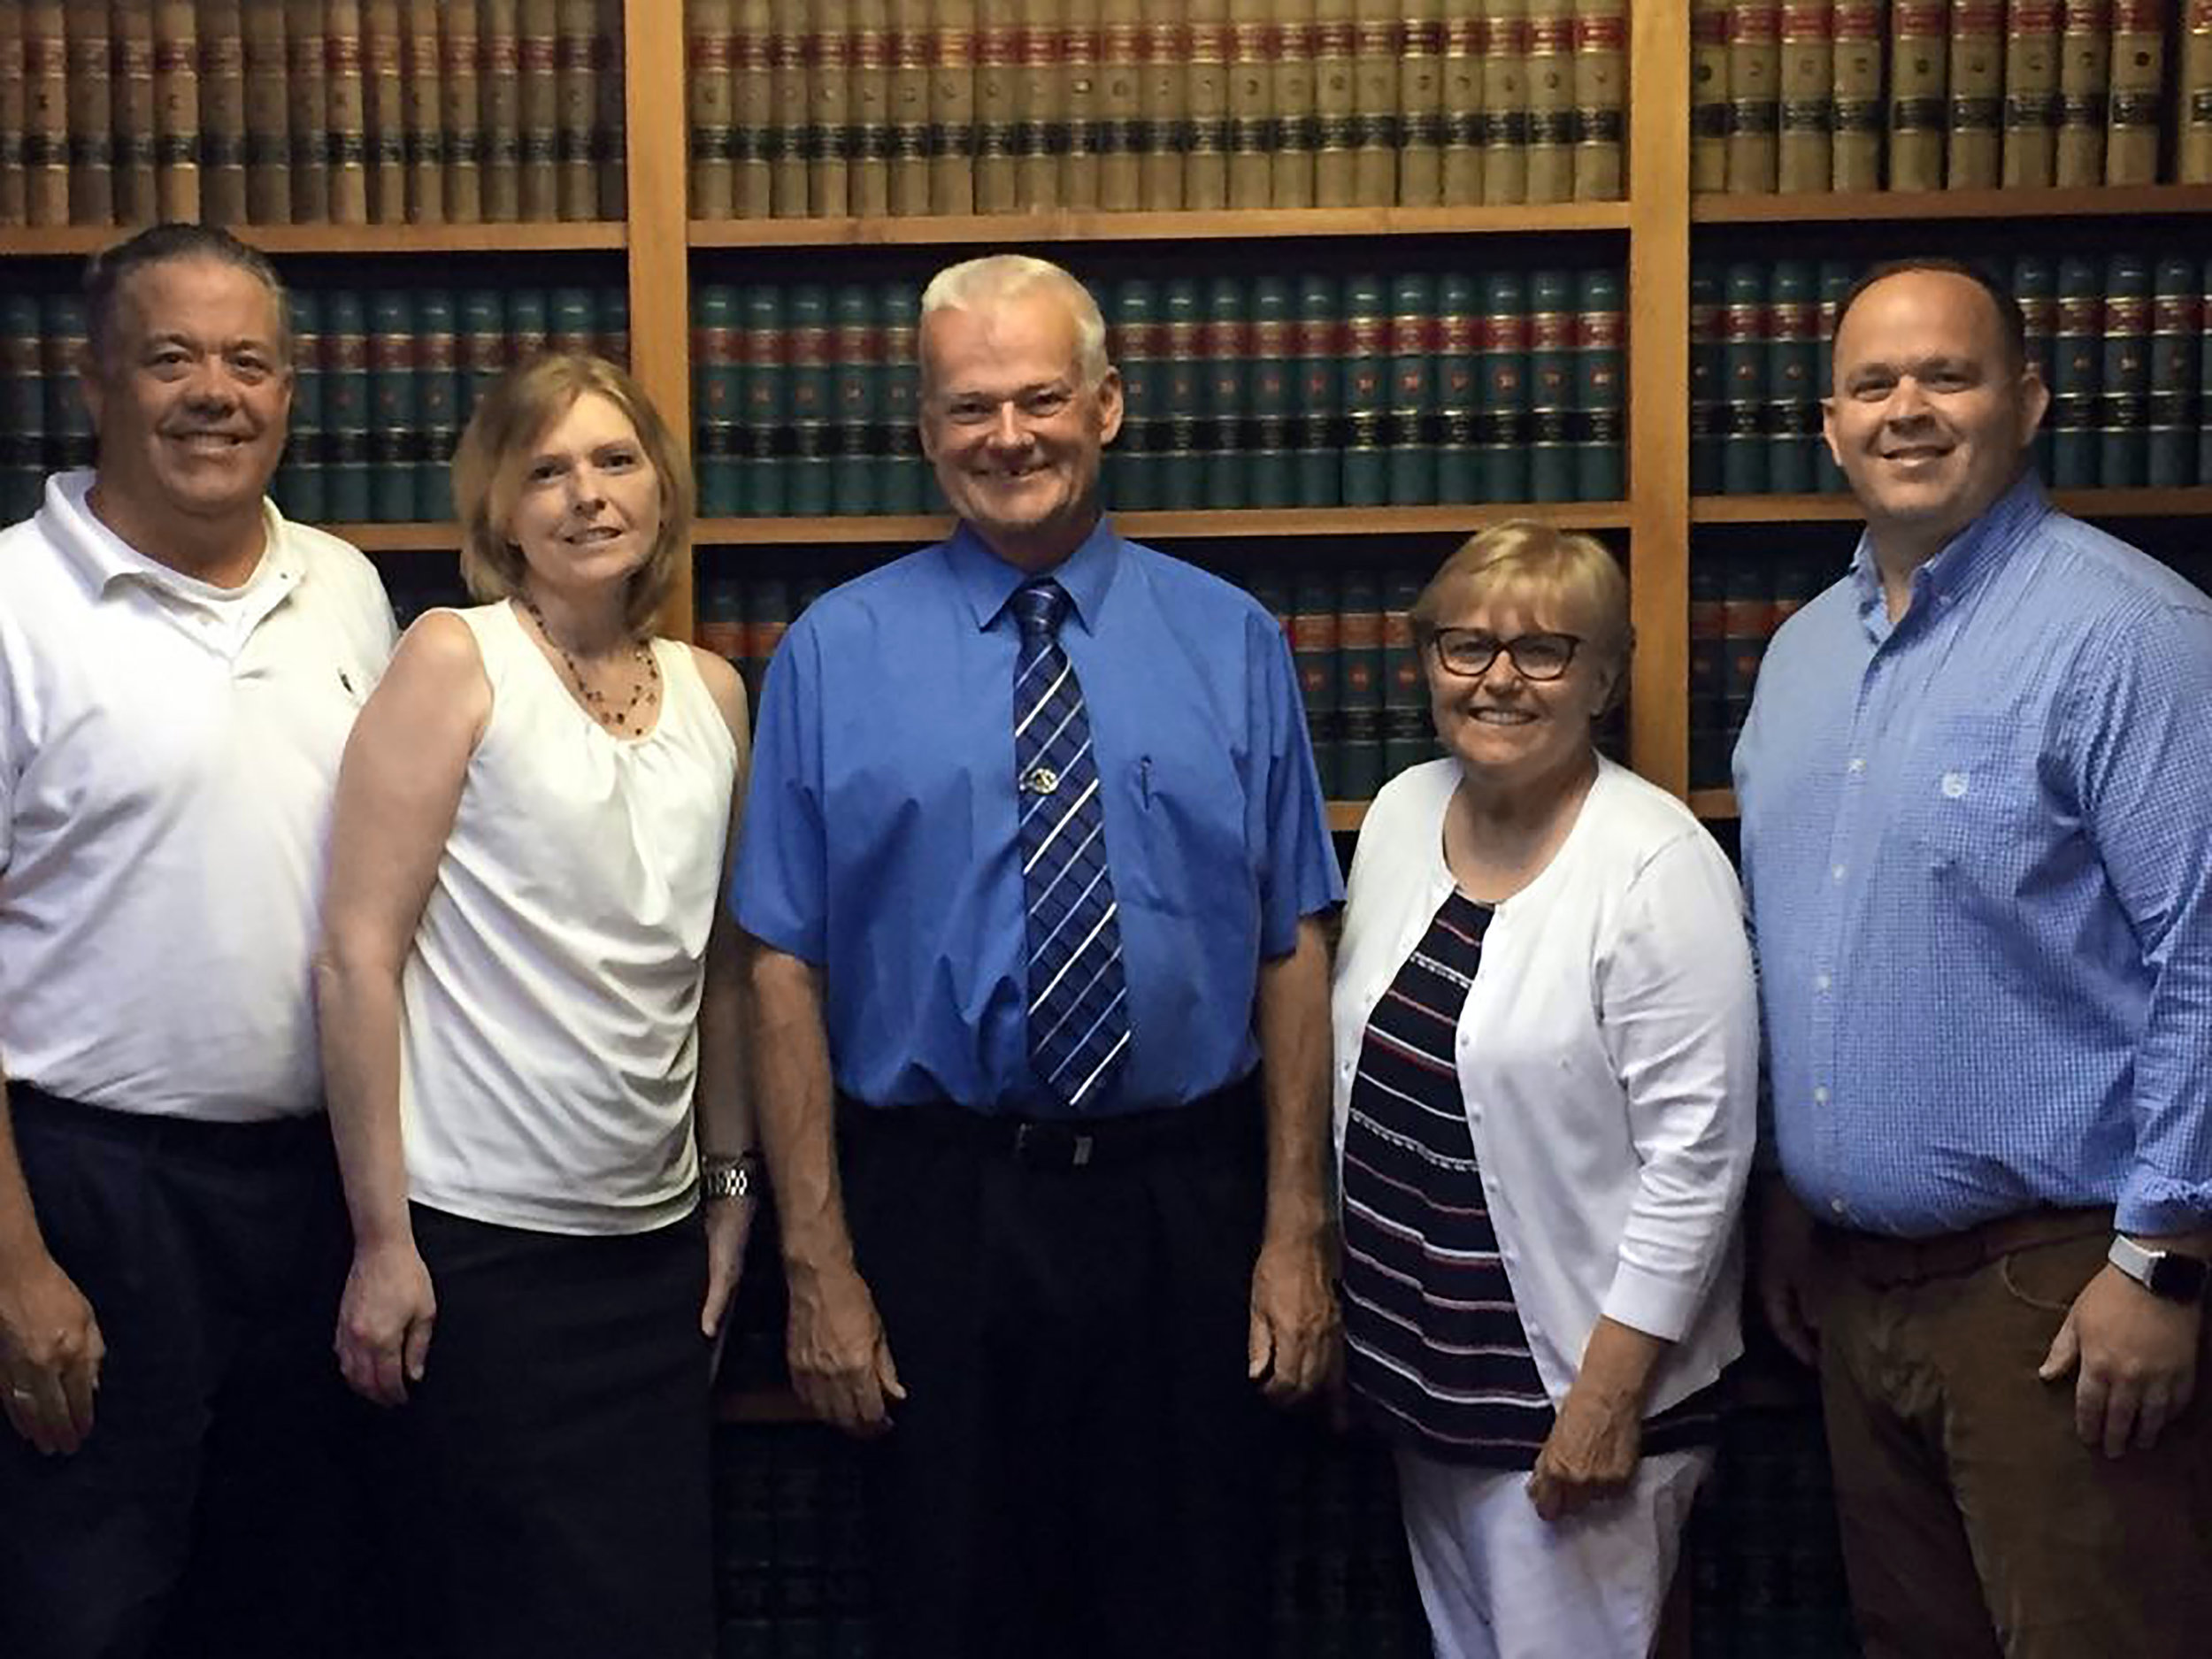 - 2019 Town of Geddes Candidates